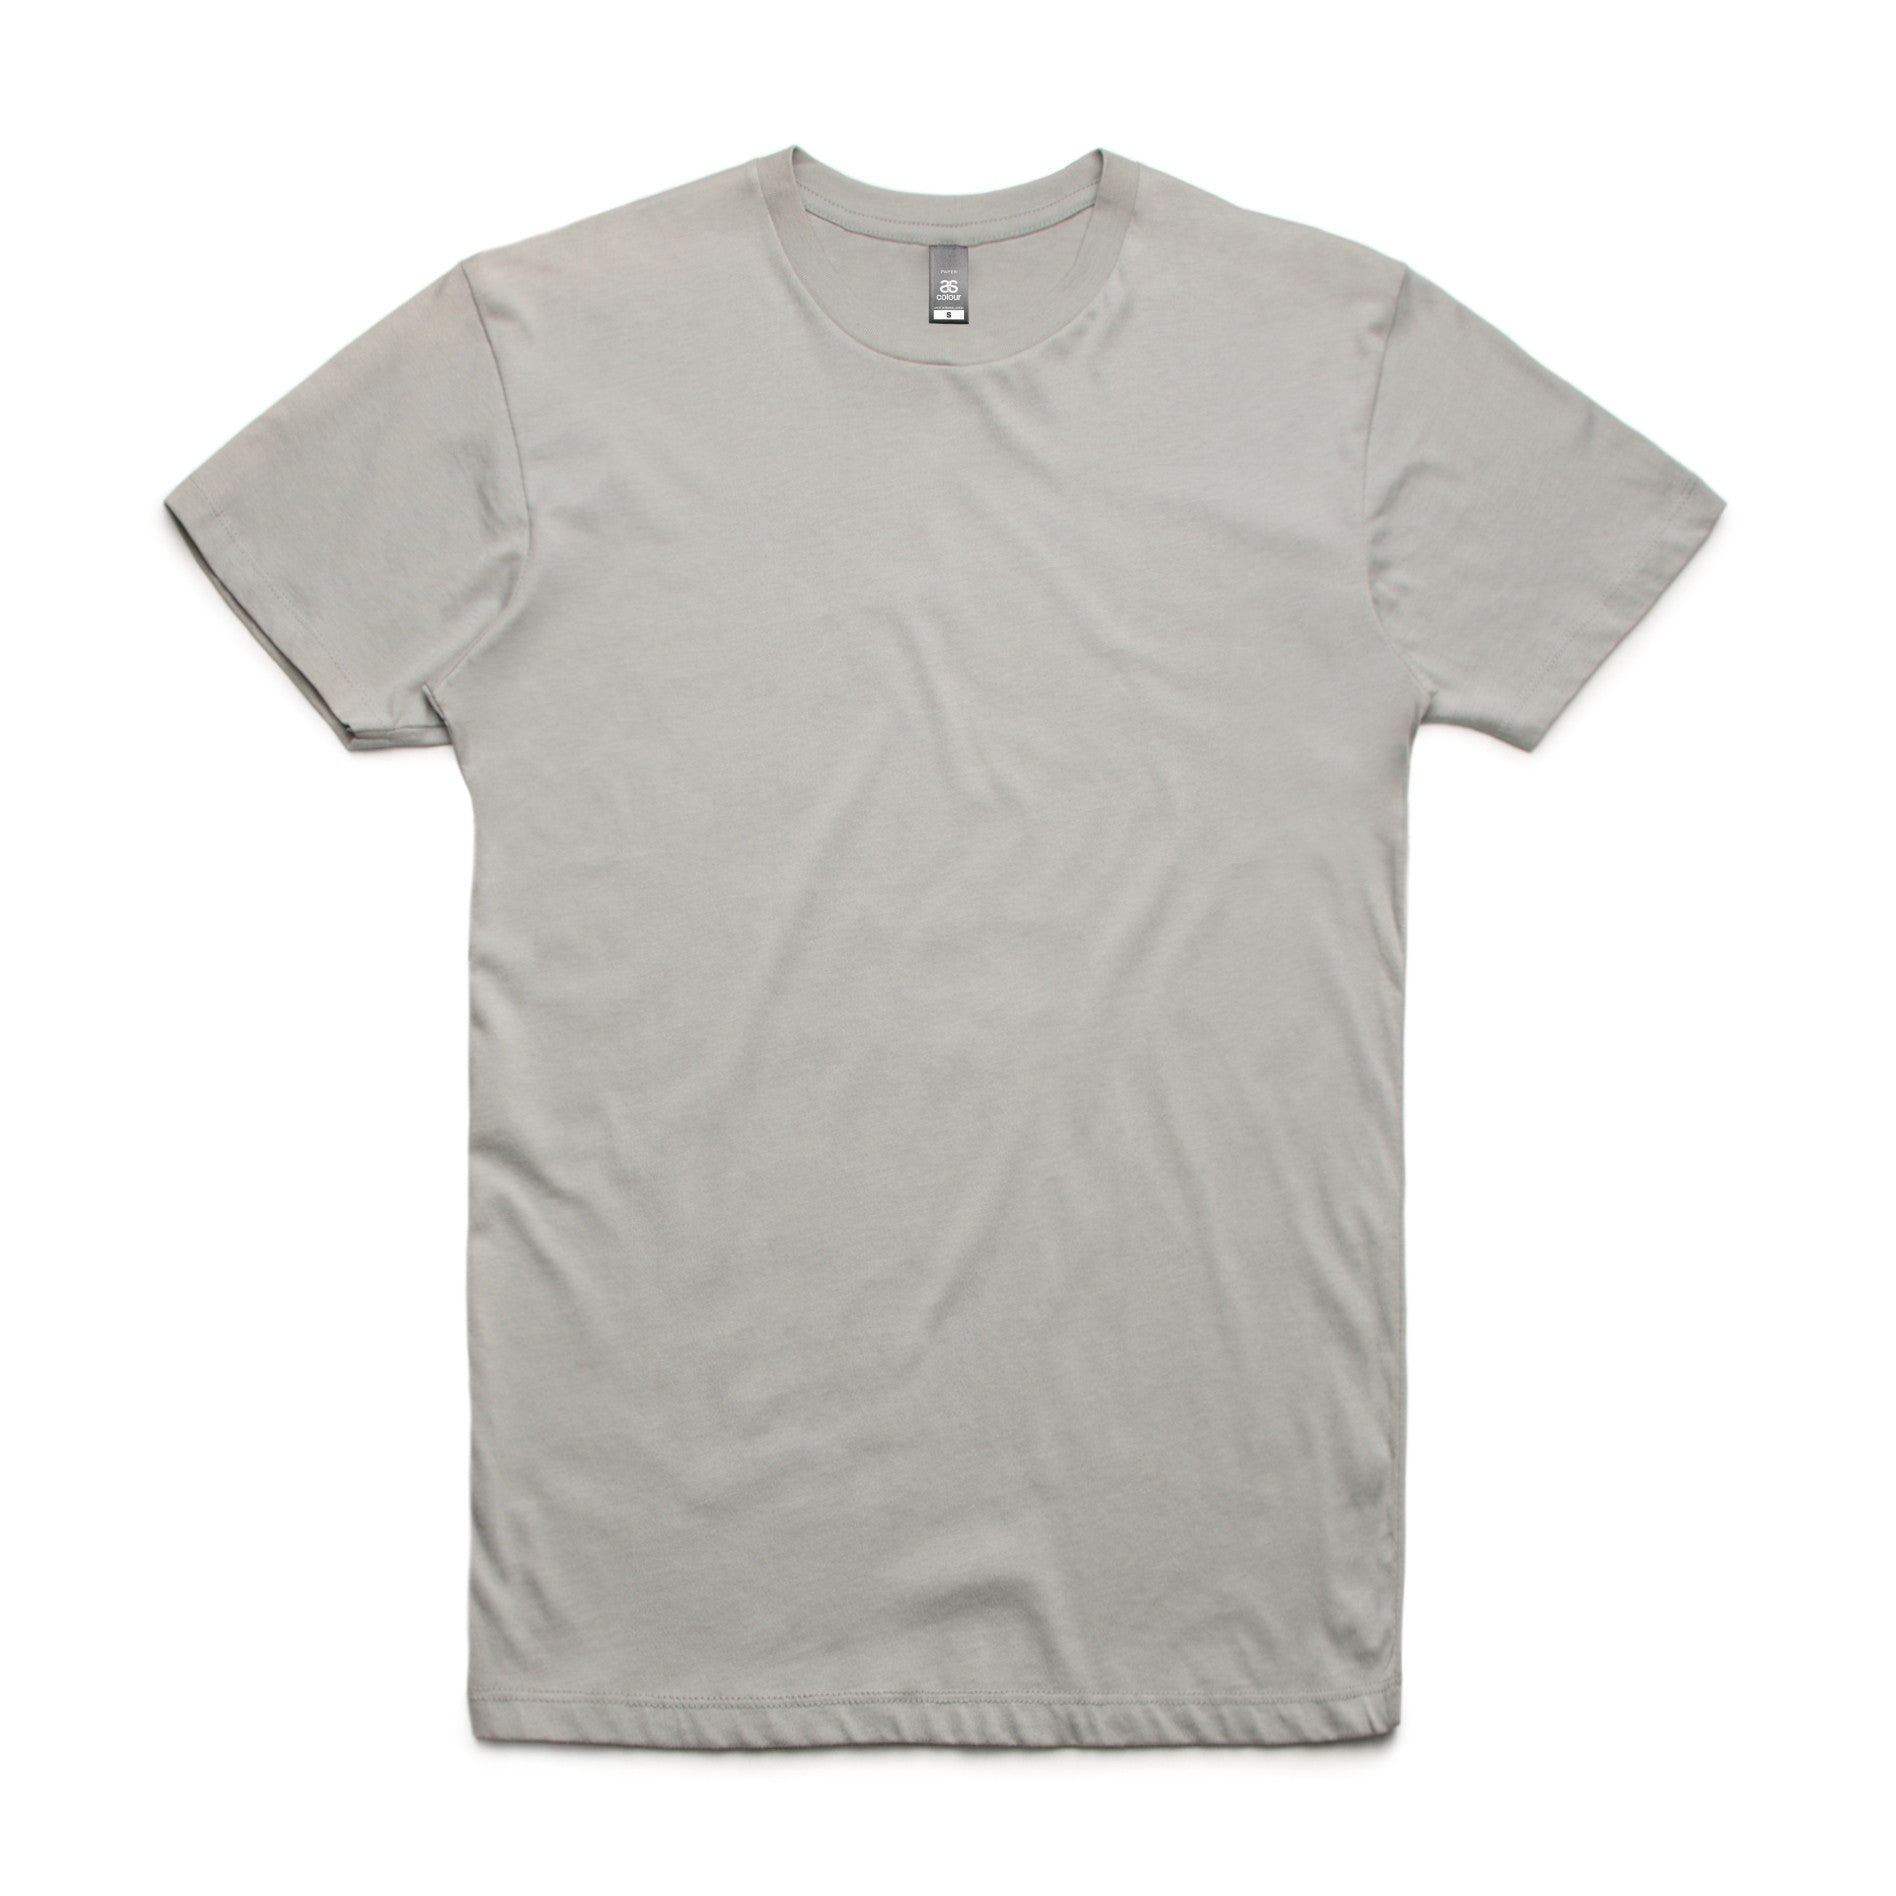 PAPER TEE - SMALL ONLY - BUY ONE GET ONE FREE